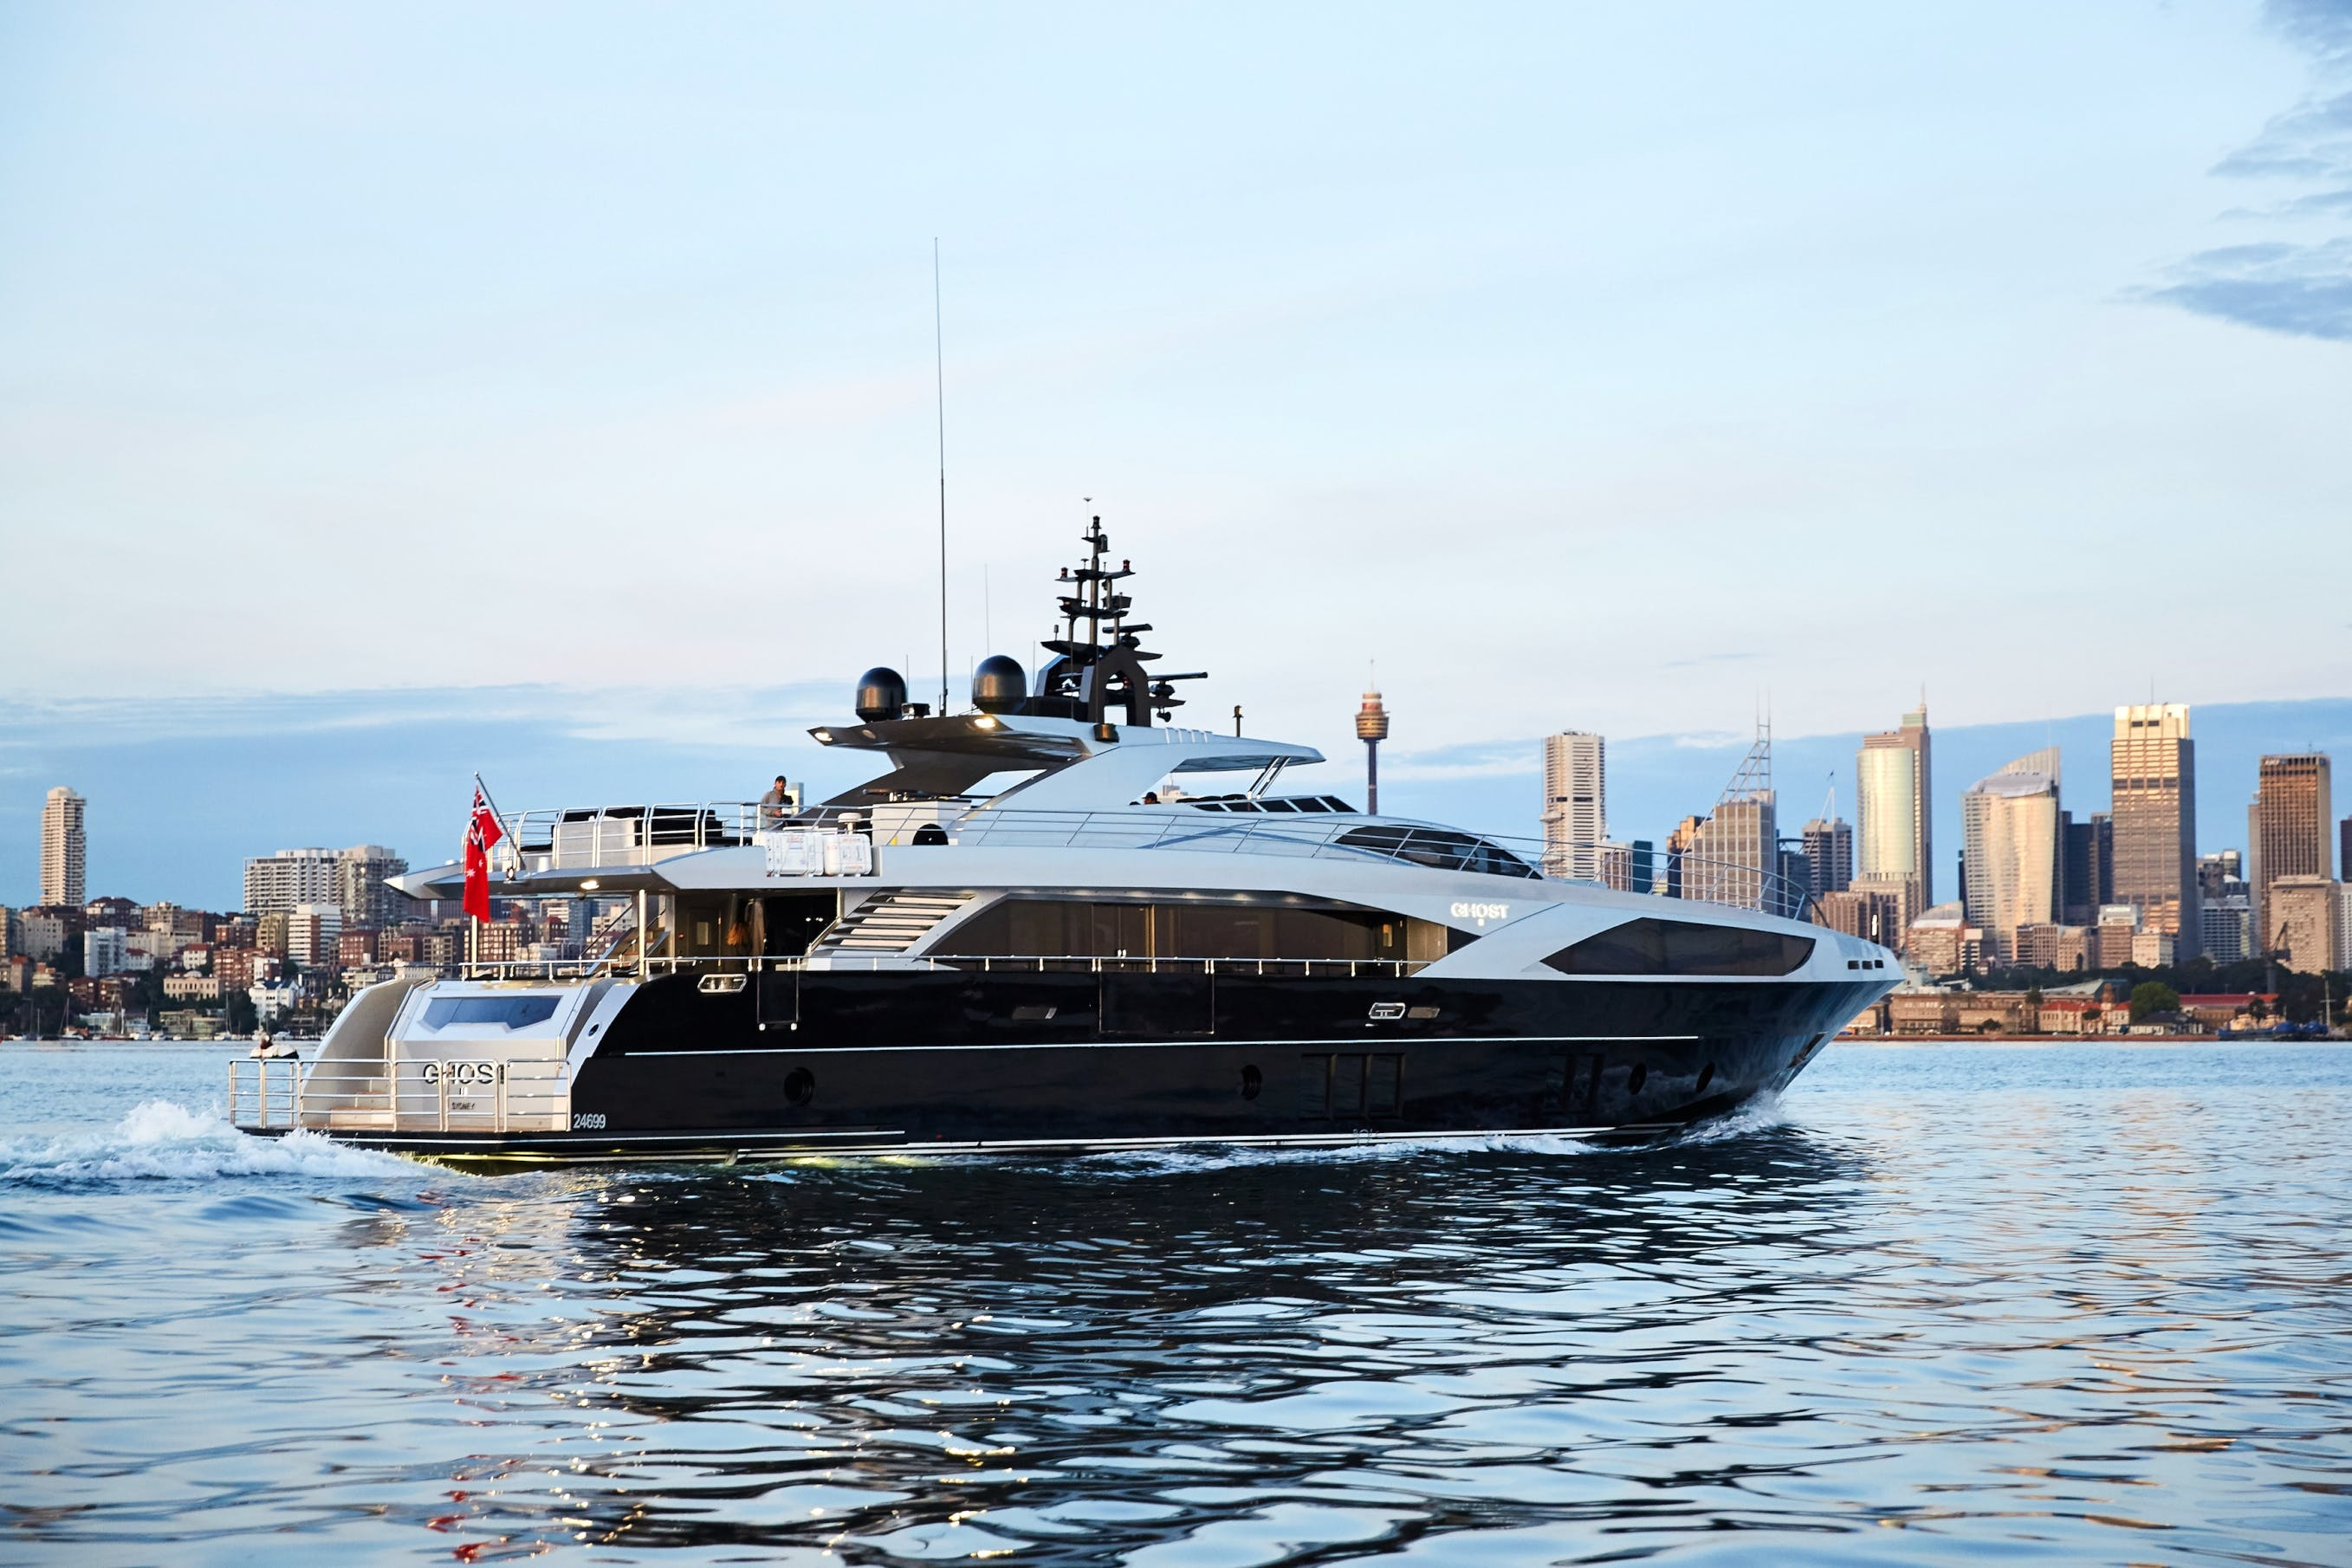 Seasonal Rates for GHOST II Private Luxury Yacht For Charter